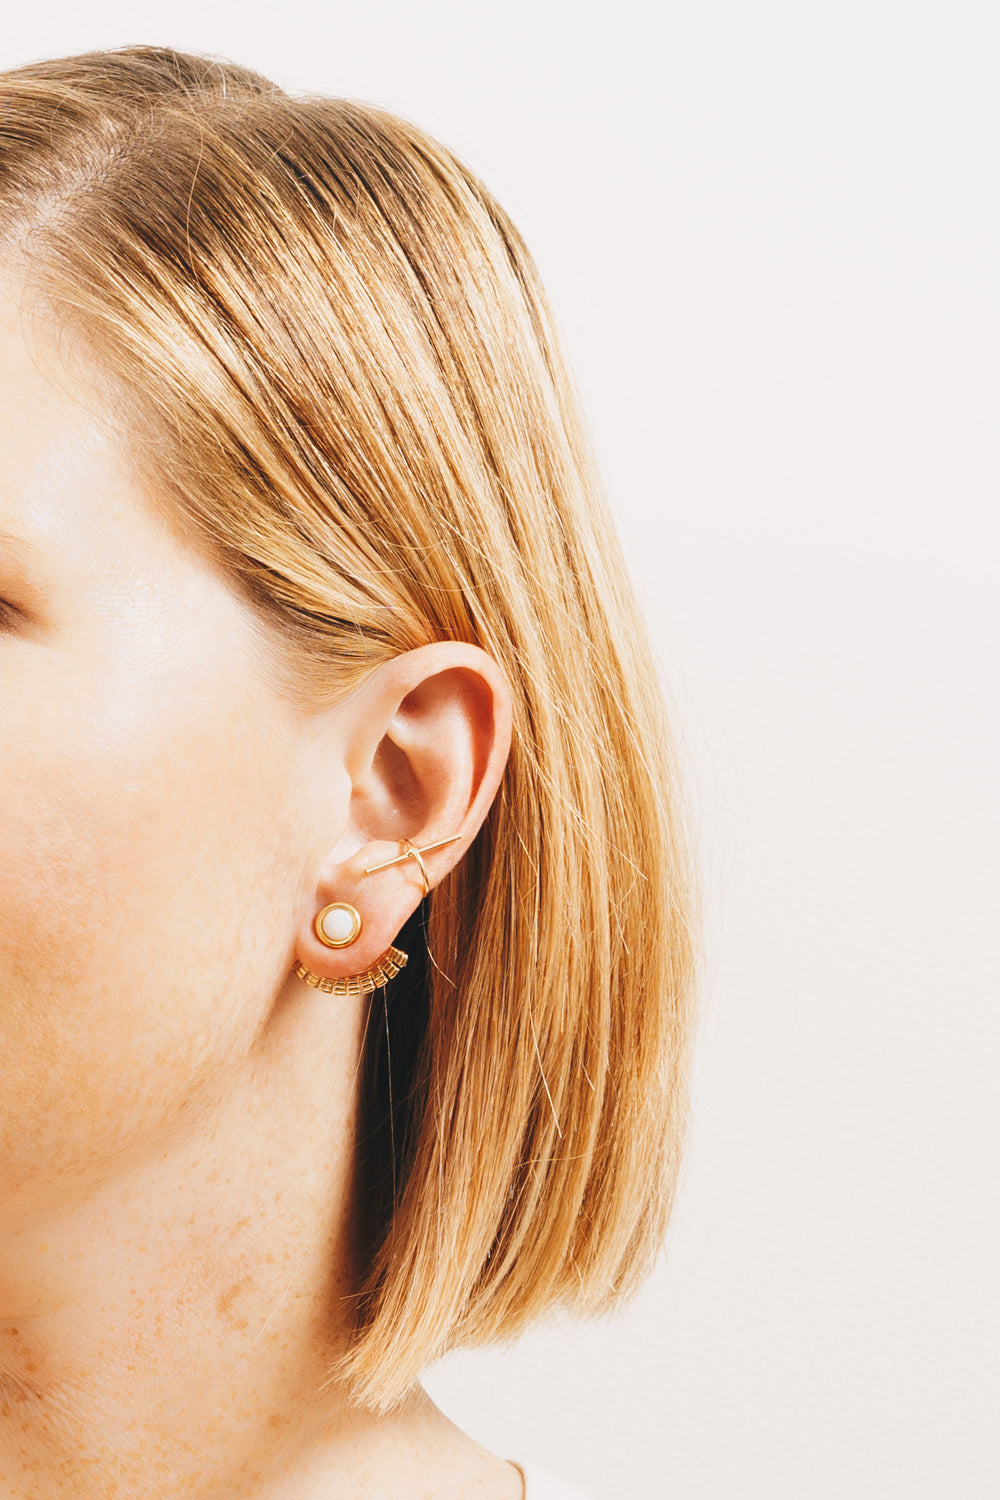 gold ear cuff with bar on model